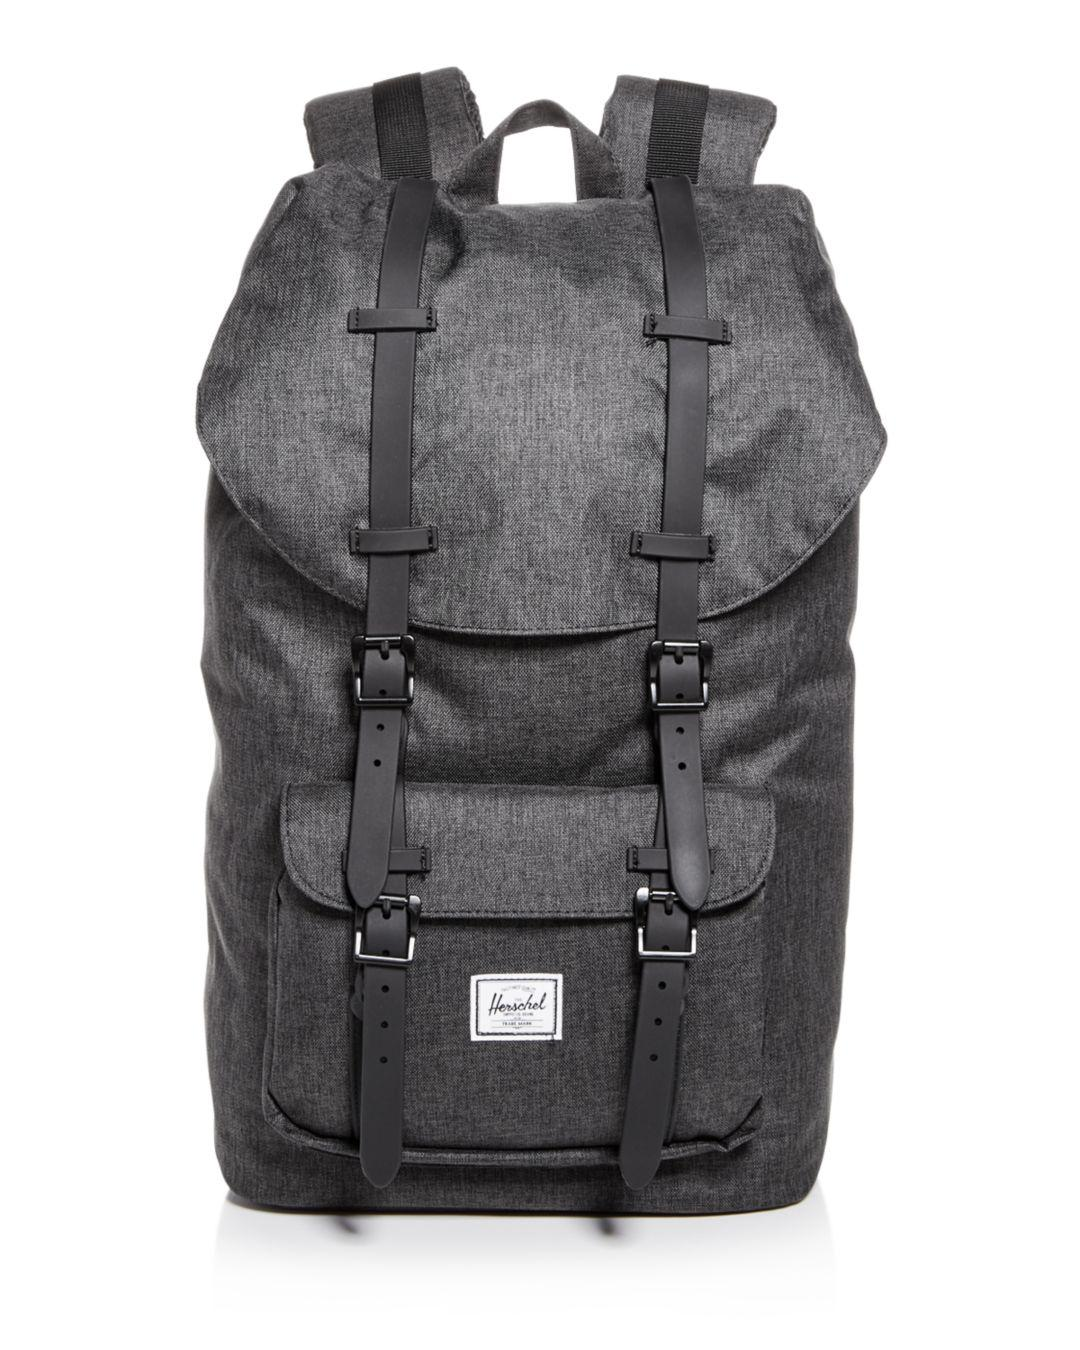 Lyst - Herschel Supply Co. Classic Little America Backpack in Black ... 8a418a92542